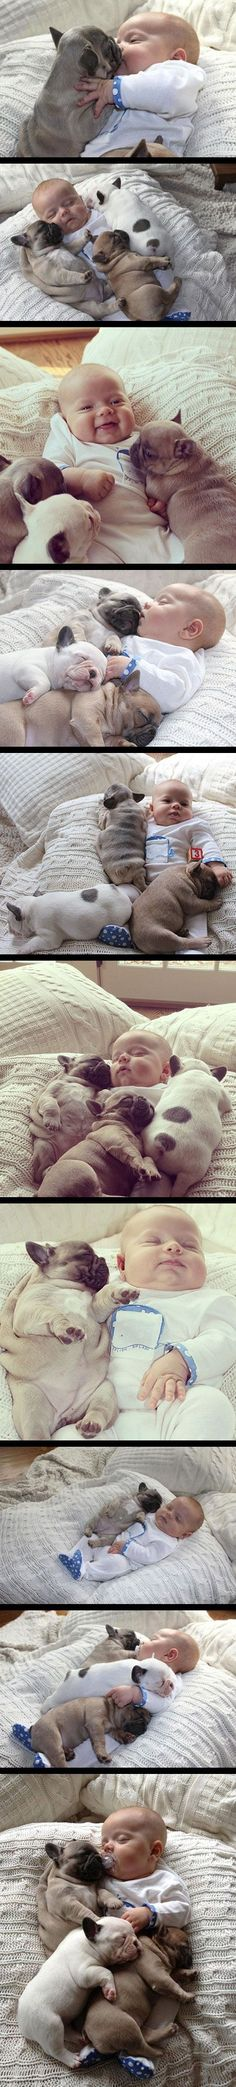 Baby and puppies - adorable :)